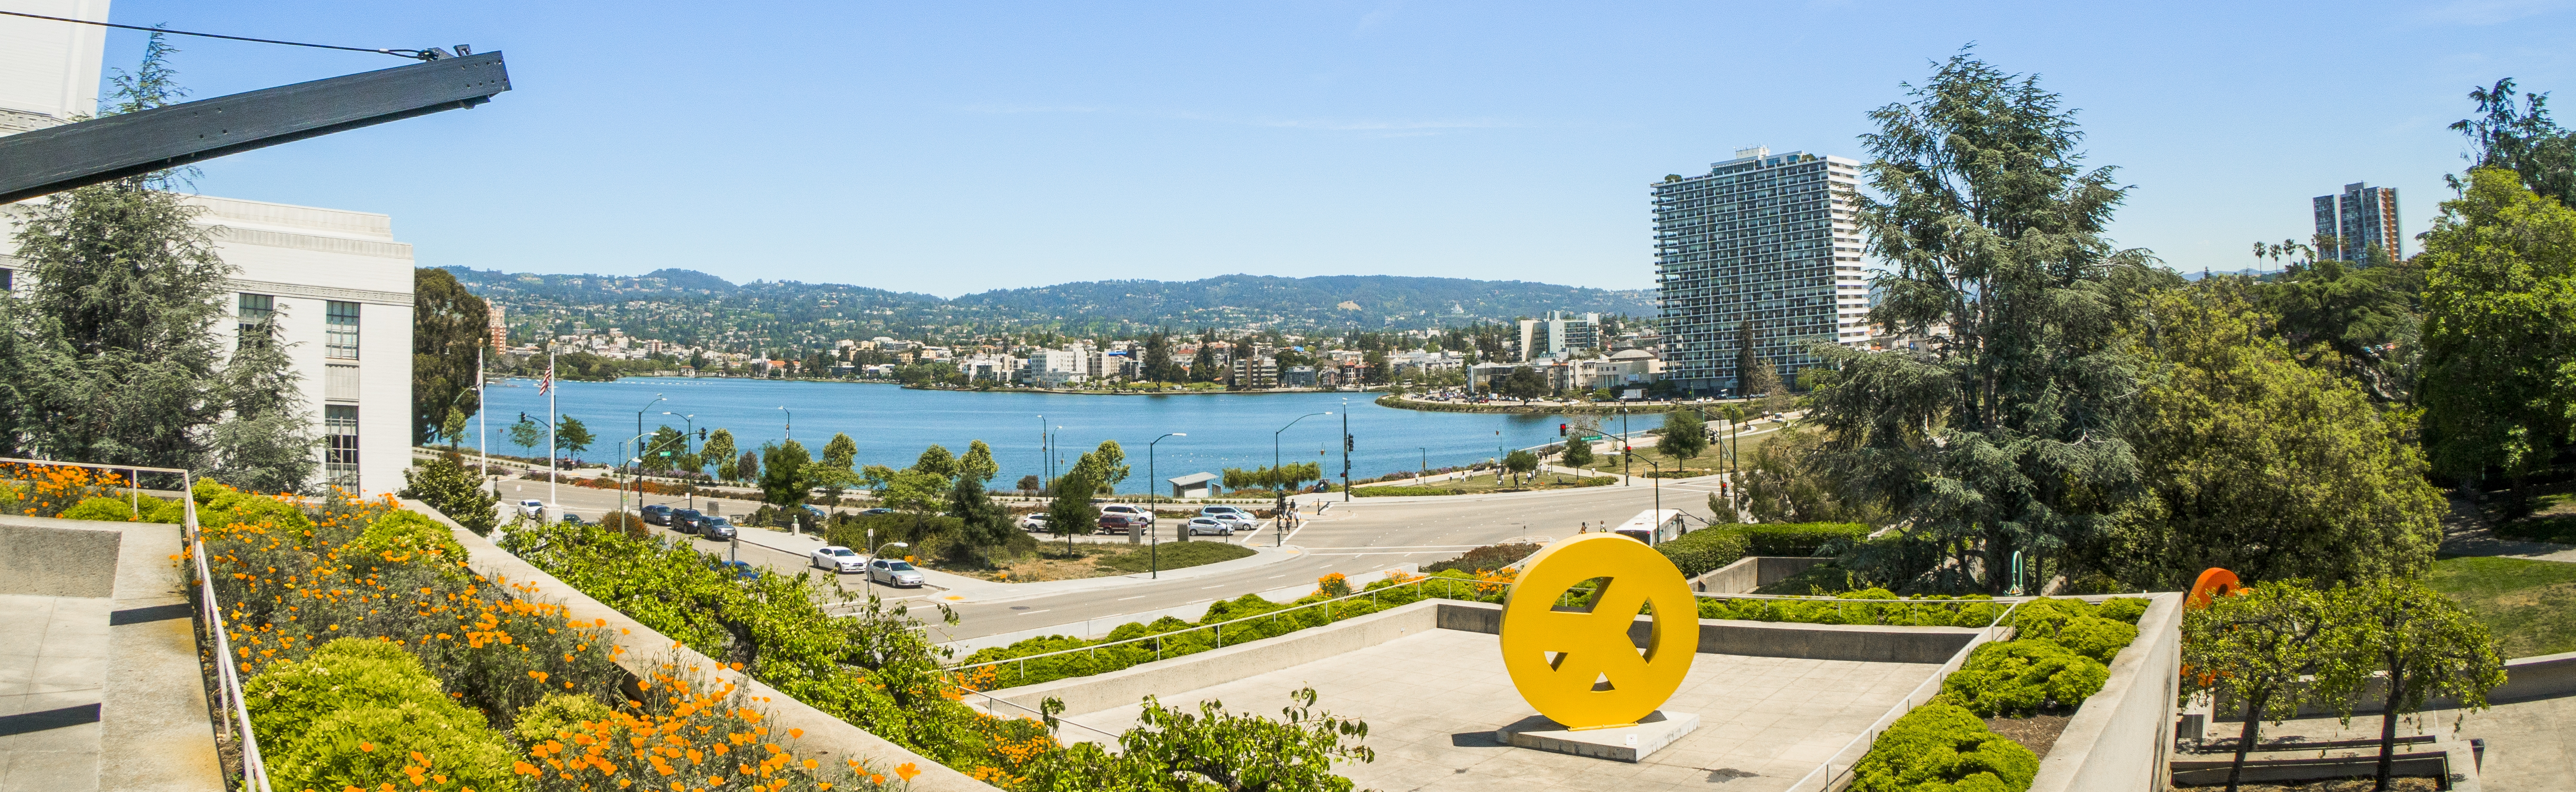 100 Things to Do in Oakland